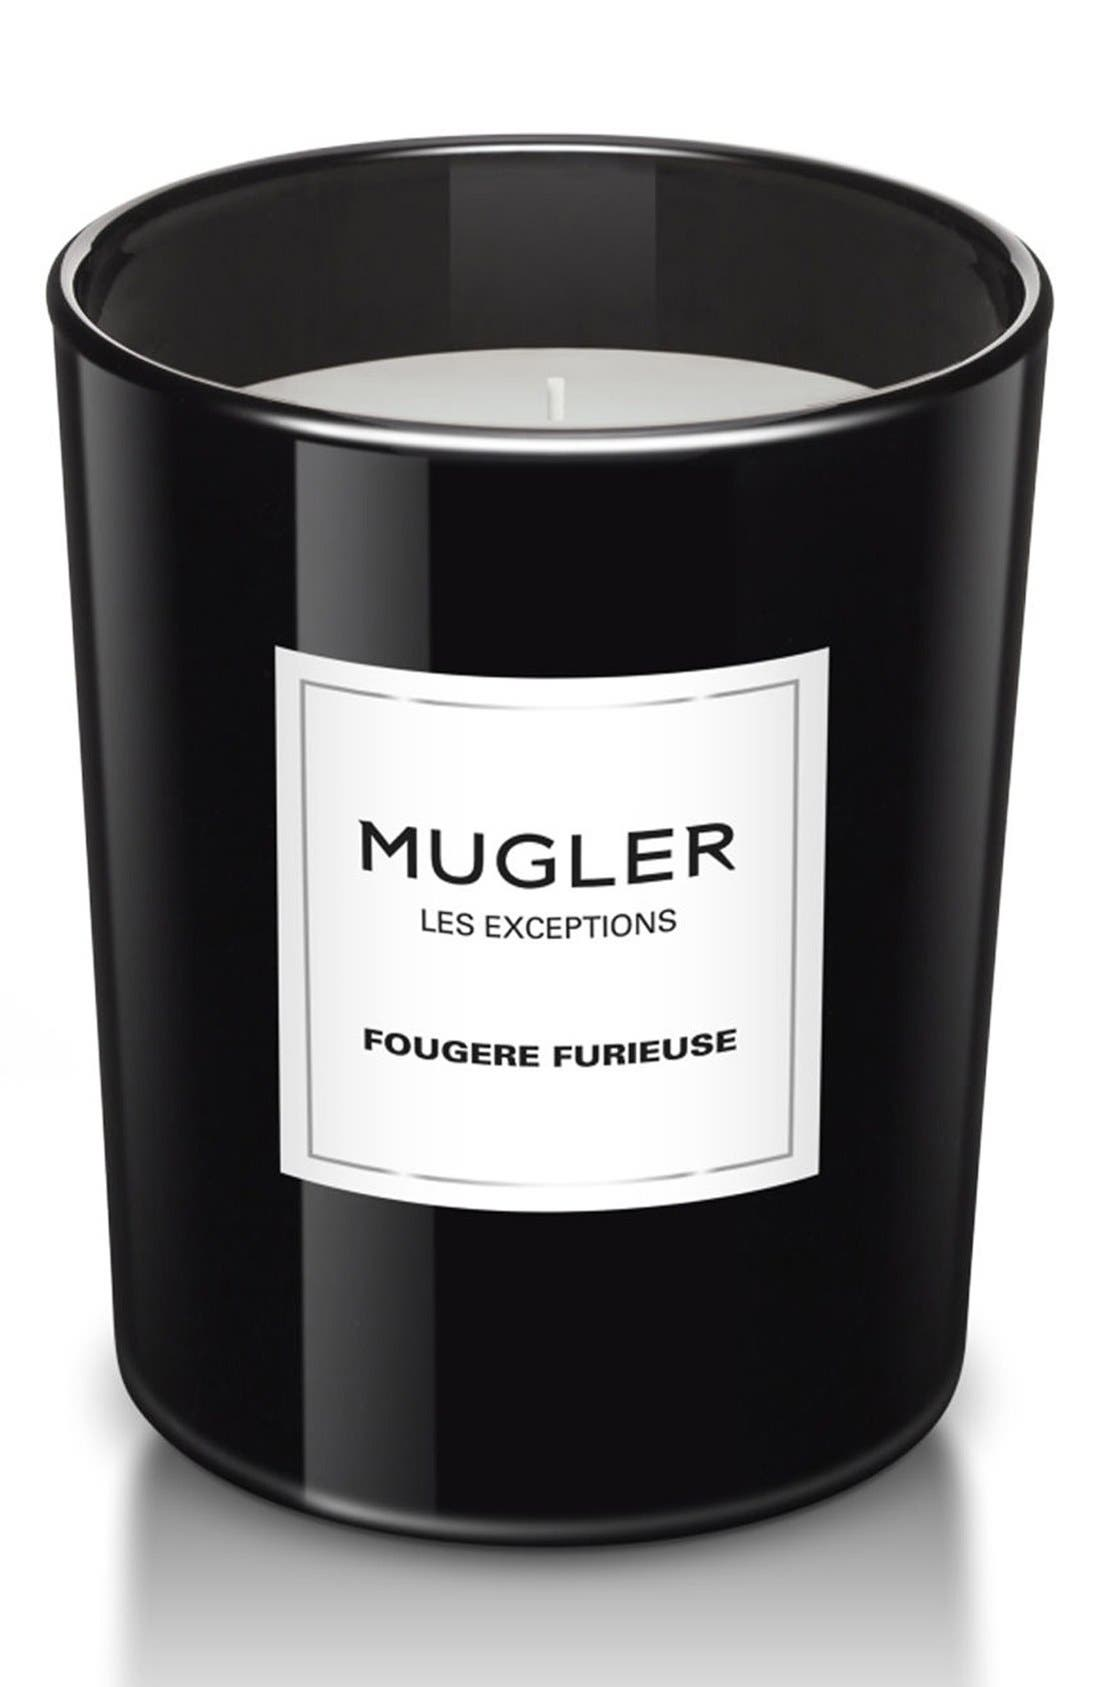 Main Image - Mugler 'Les Exceptions - Fougere Furieuse' Candle